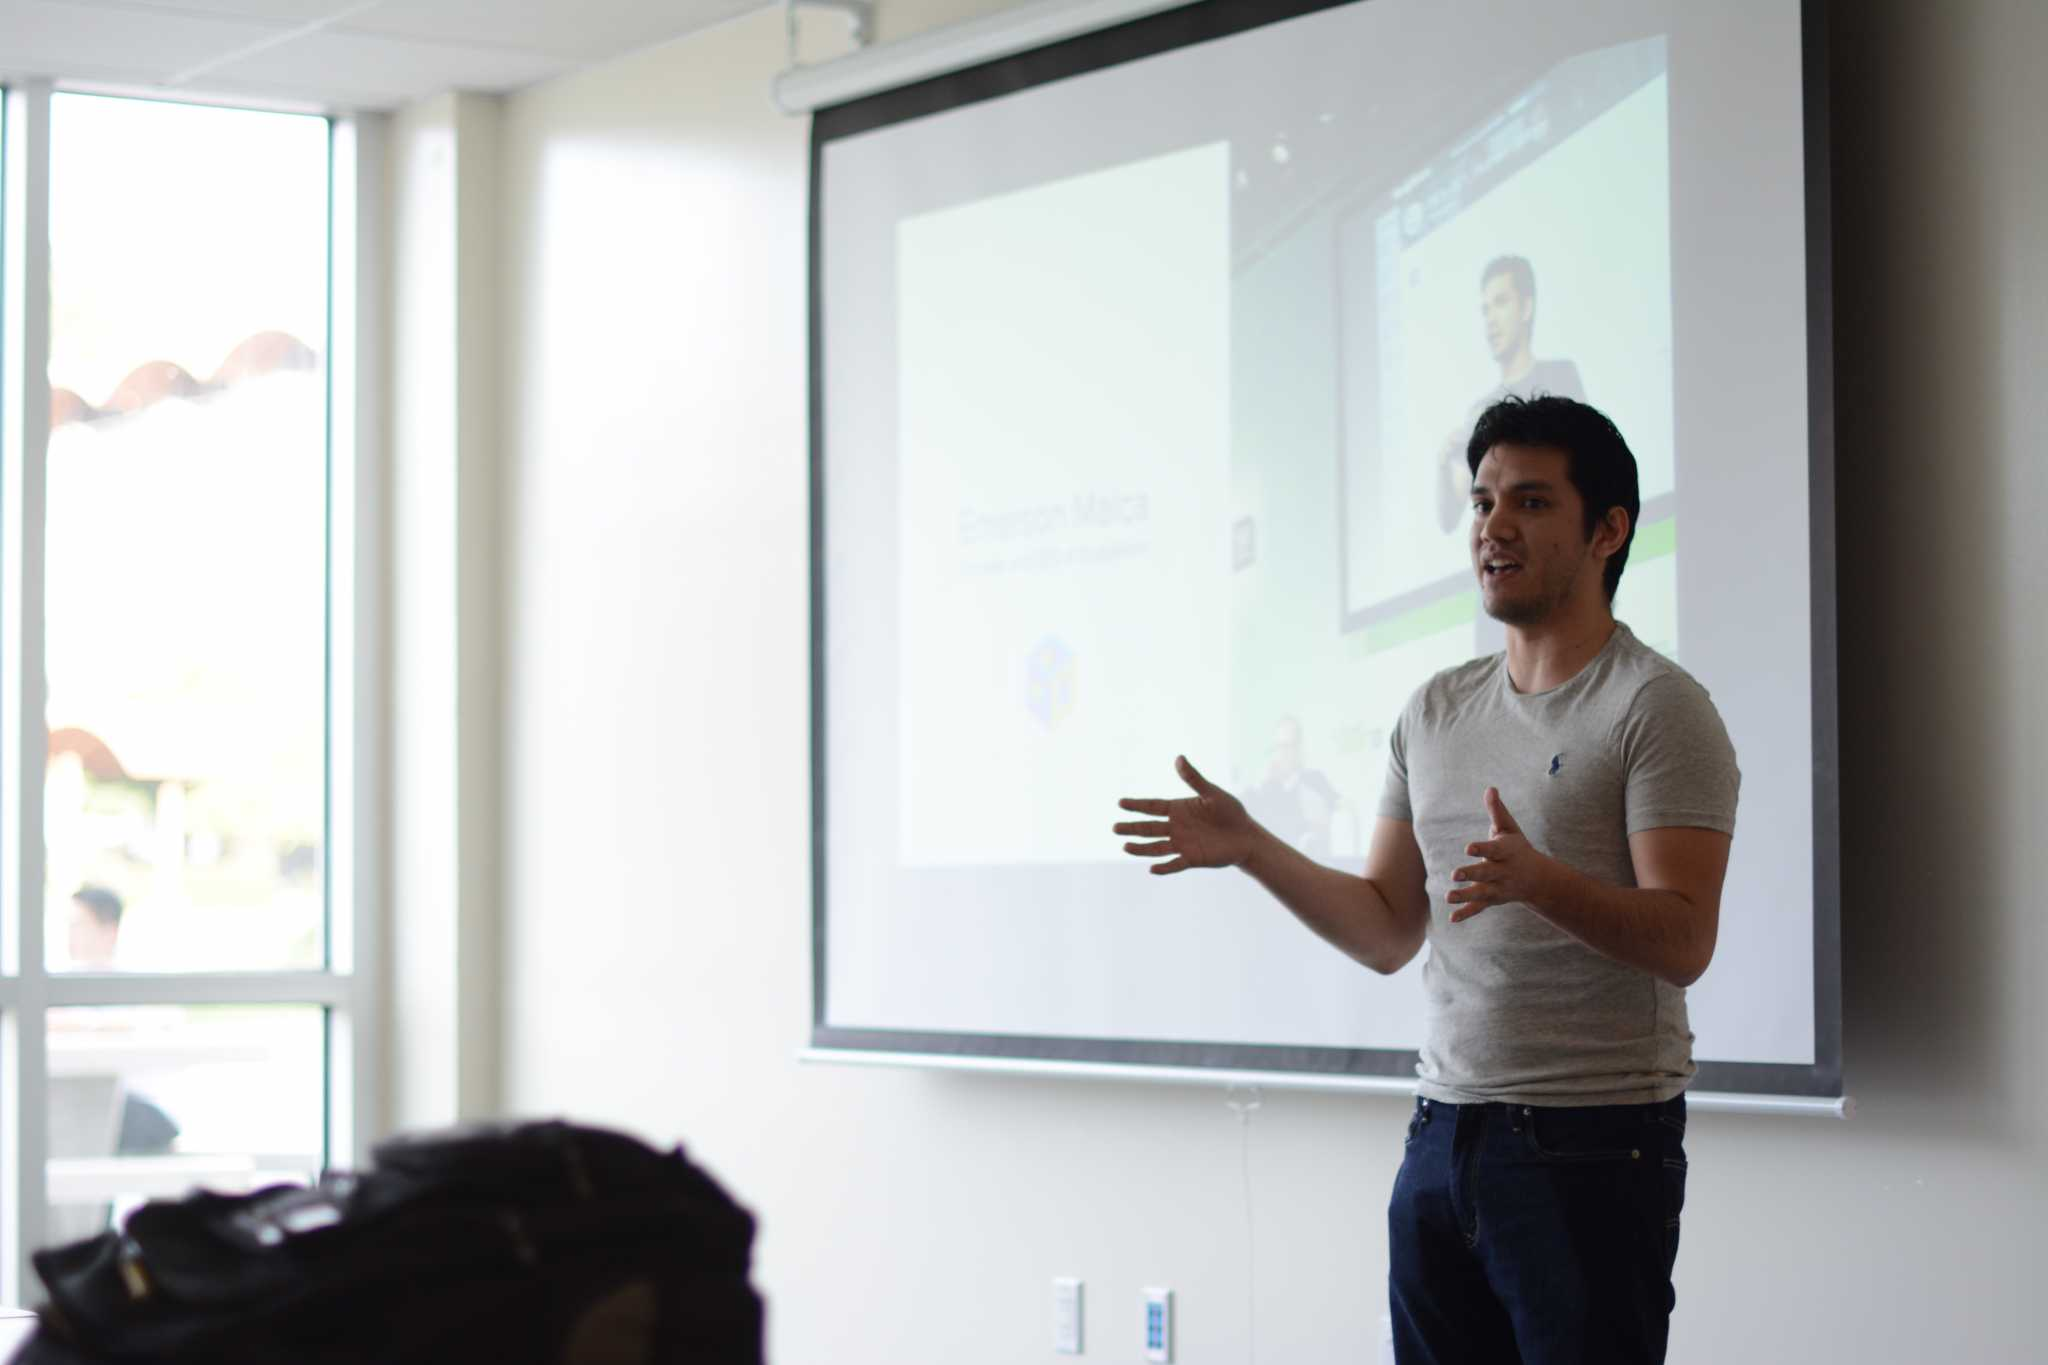 Emerson Malca, founder of StudyRoom, speaks to SF State students about start-ups at INCUBED Welcome Day in the J. Paul Leonard Library, Tuesday, Feb. 9, 2016. (Xpress / Emily Chavous)